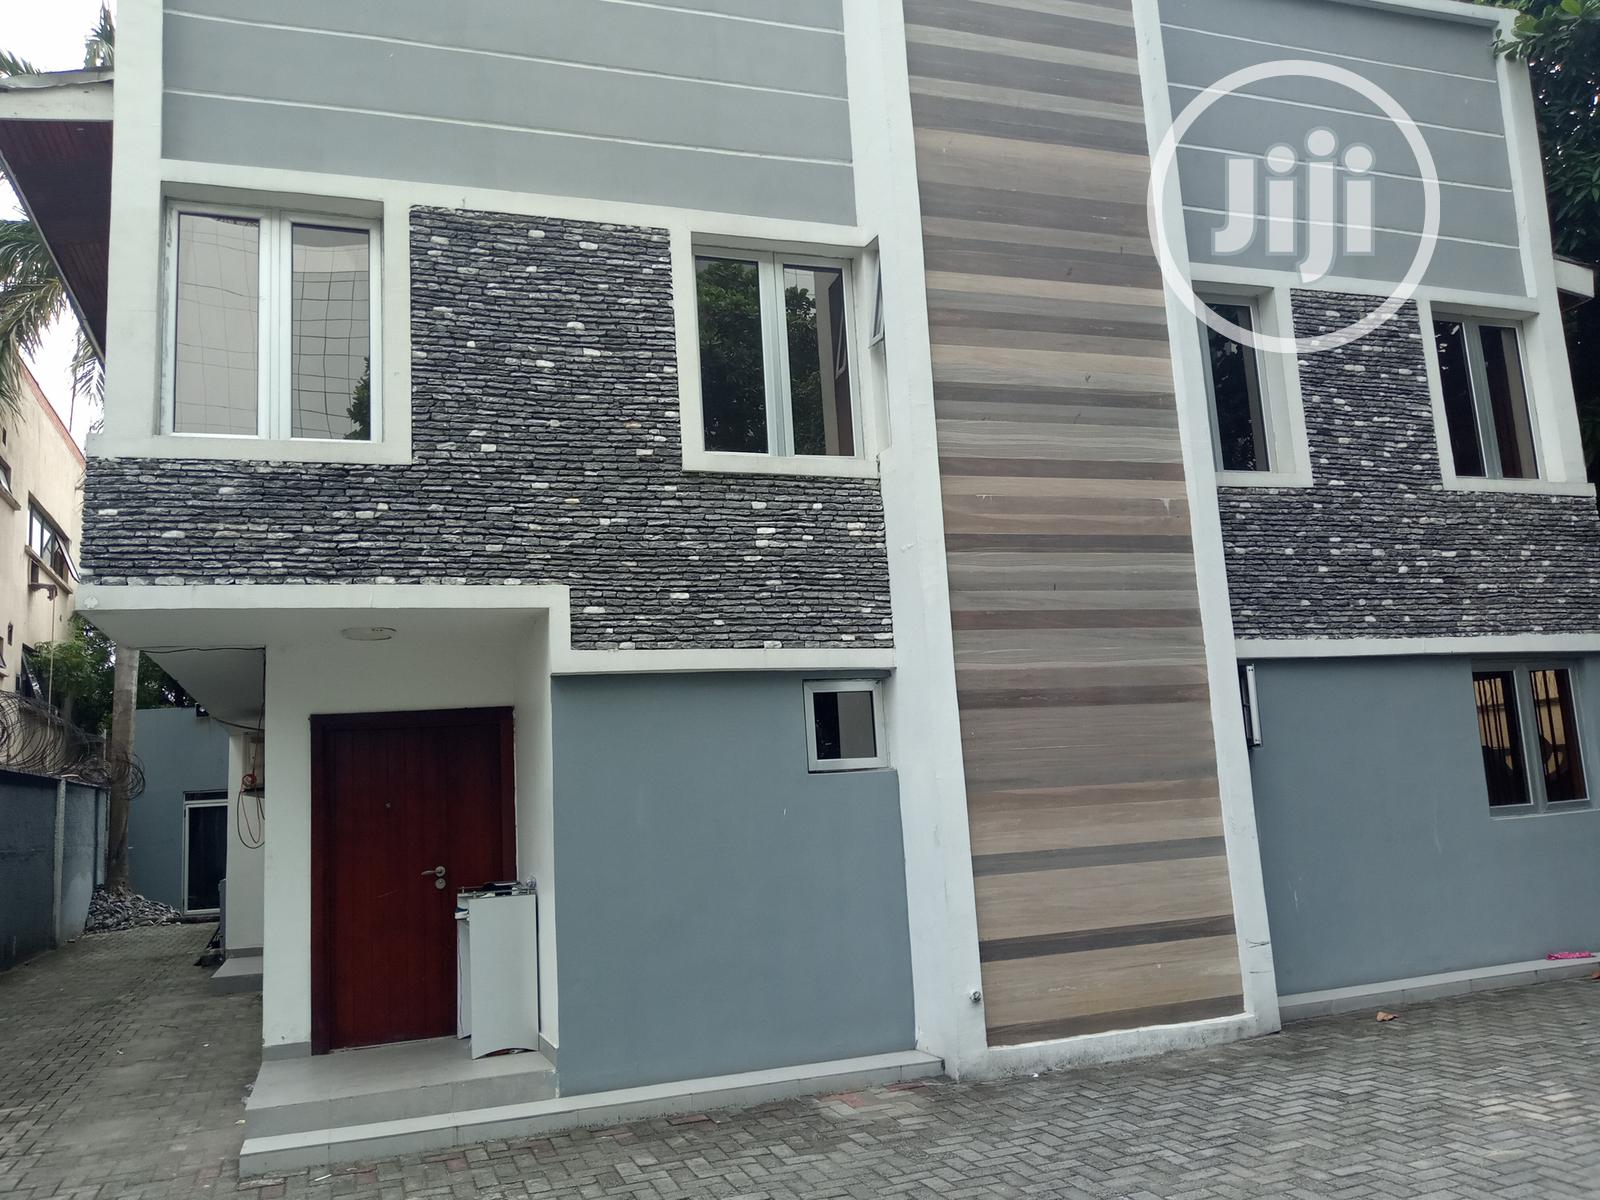 7 Bedrooms Fully Detached Duplex To Let At Victoria Island | Commercial Property For Rent for sale in Victoria Island, Lagos State, Nigeria